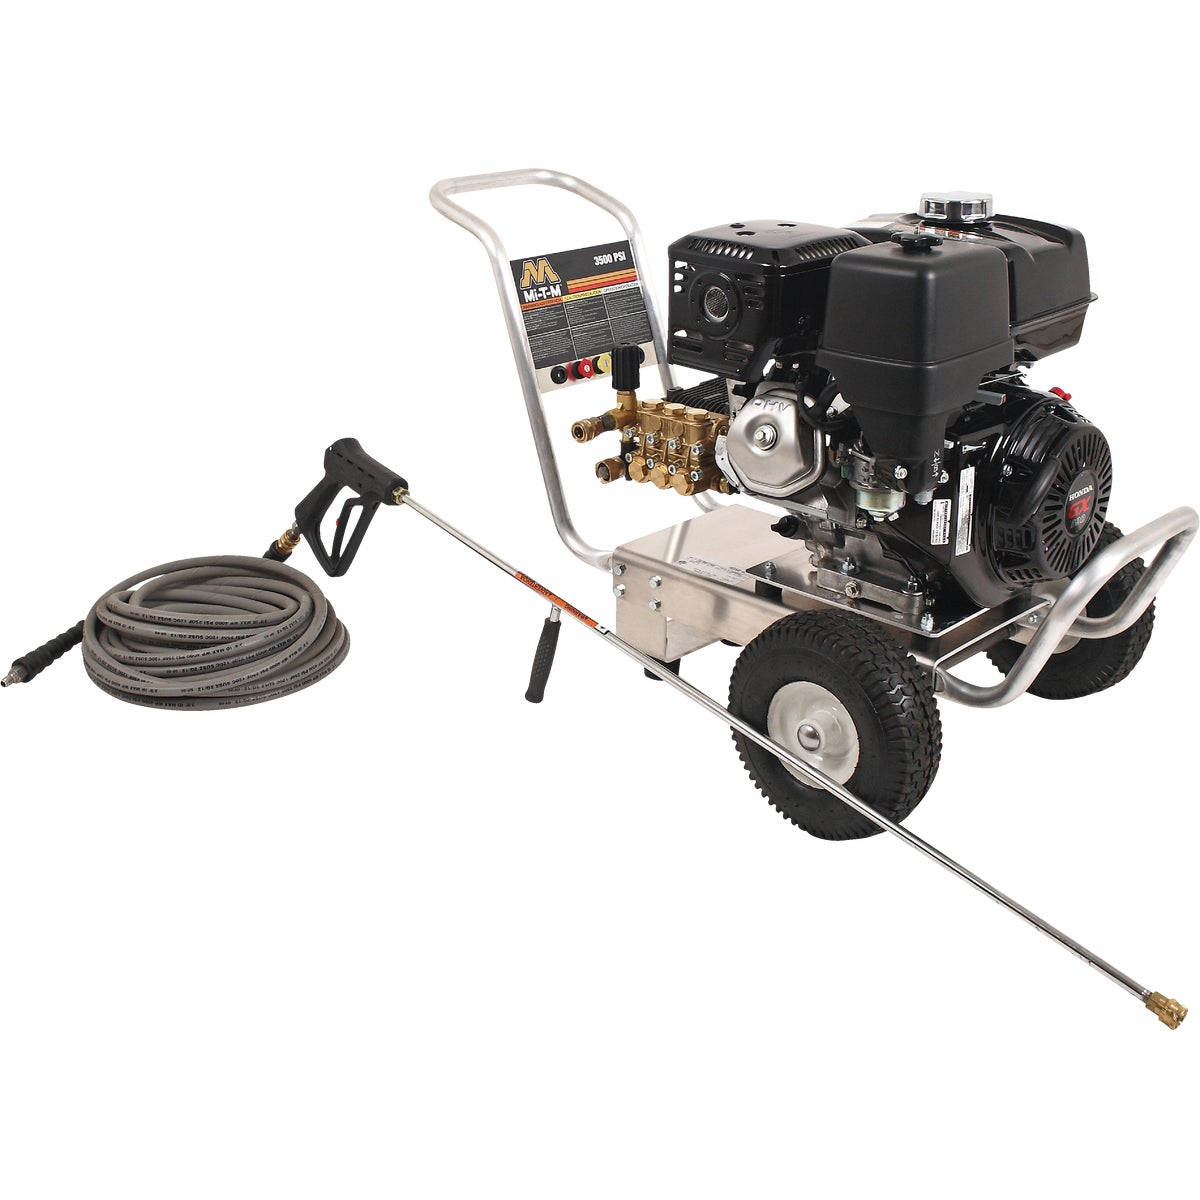 3500PSI PRESSURE WASHER - CA-3504-0MHB by Mi T M Corp